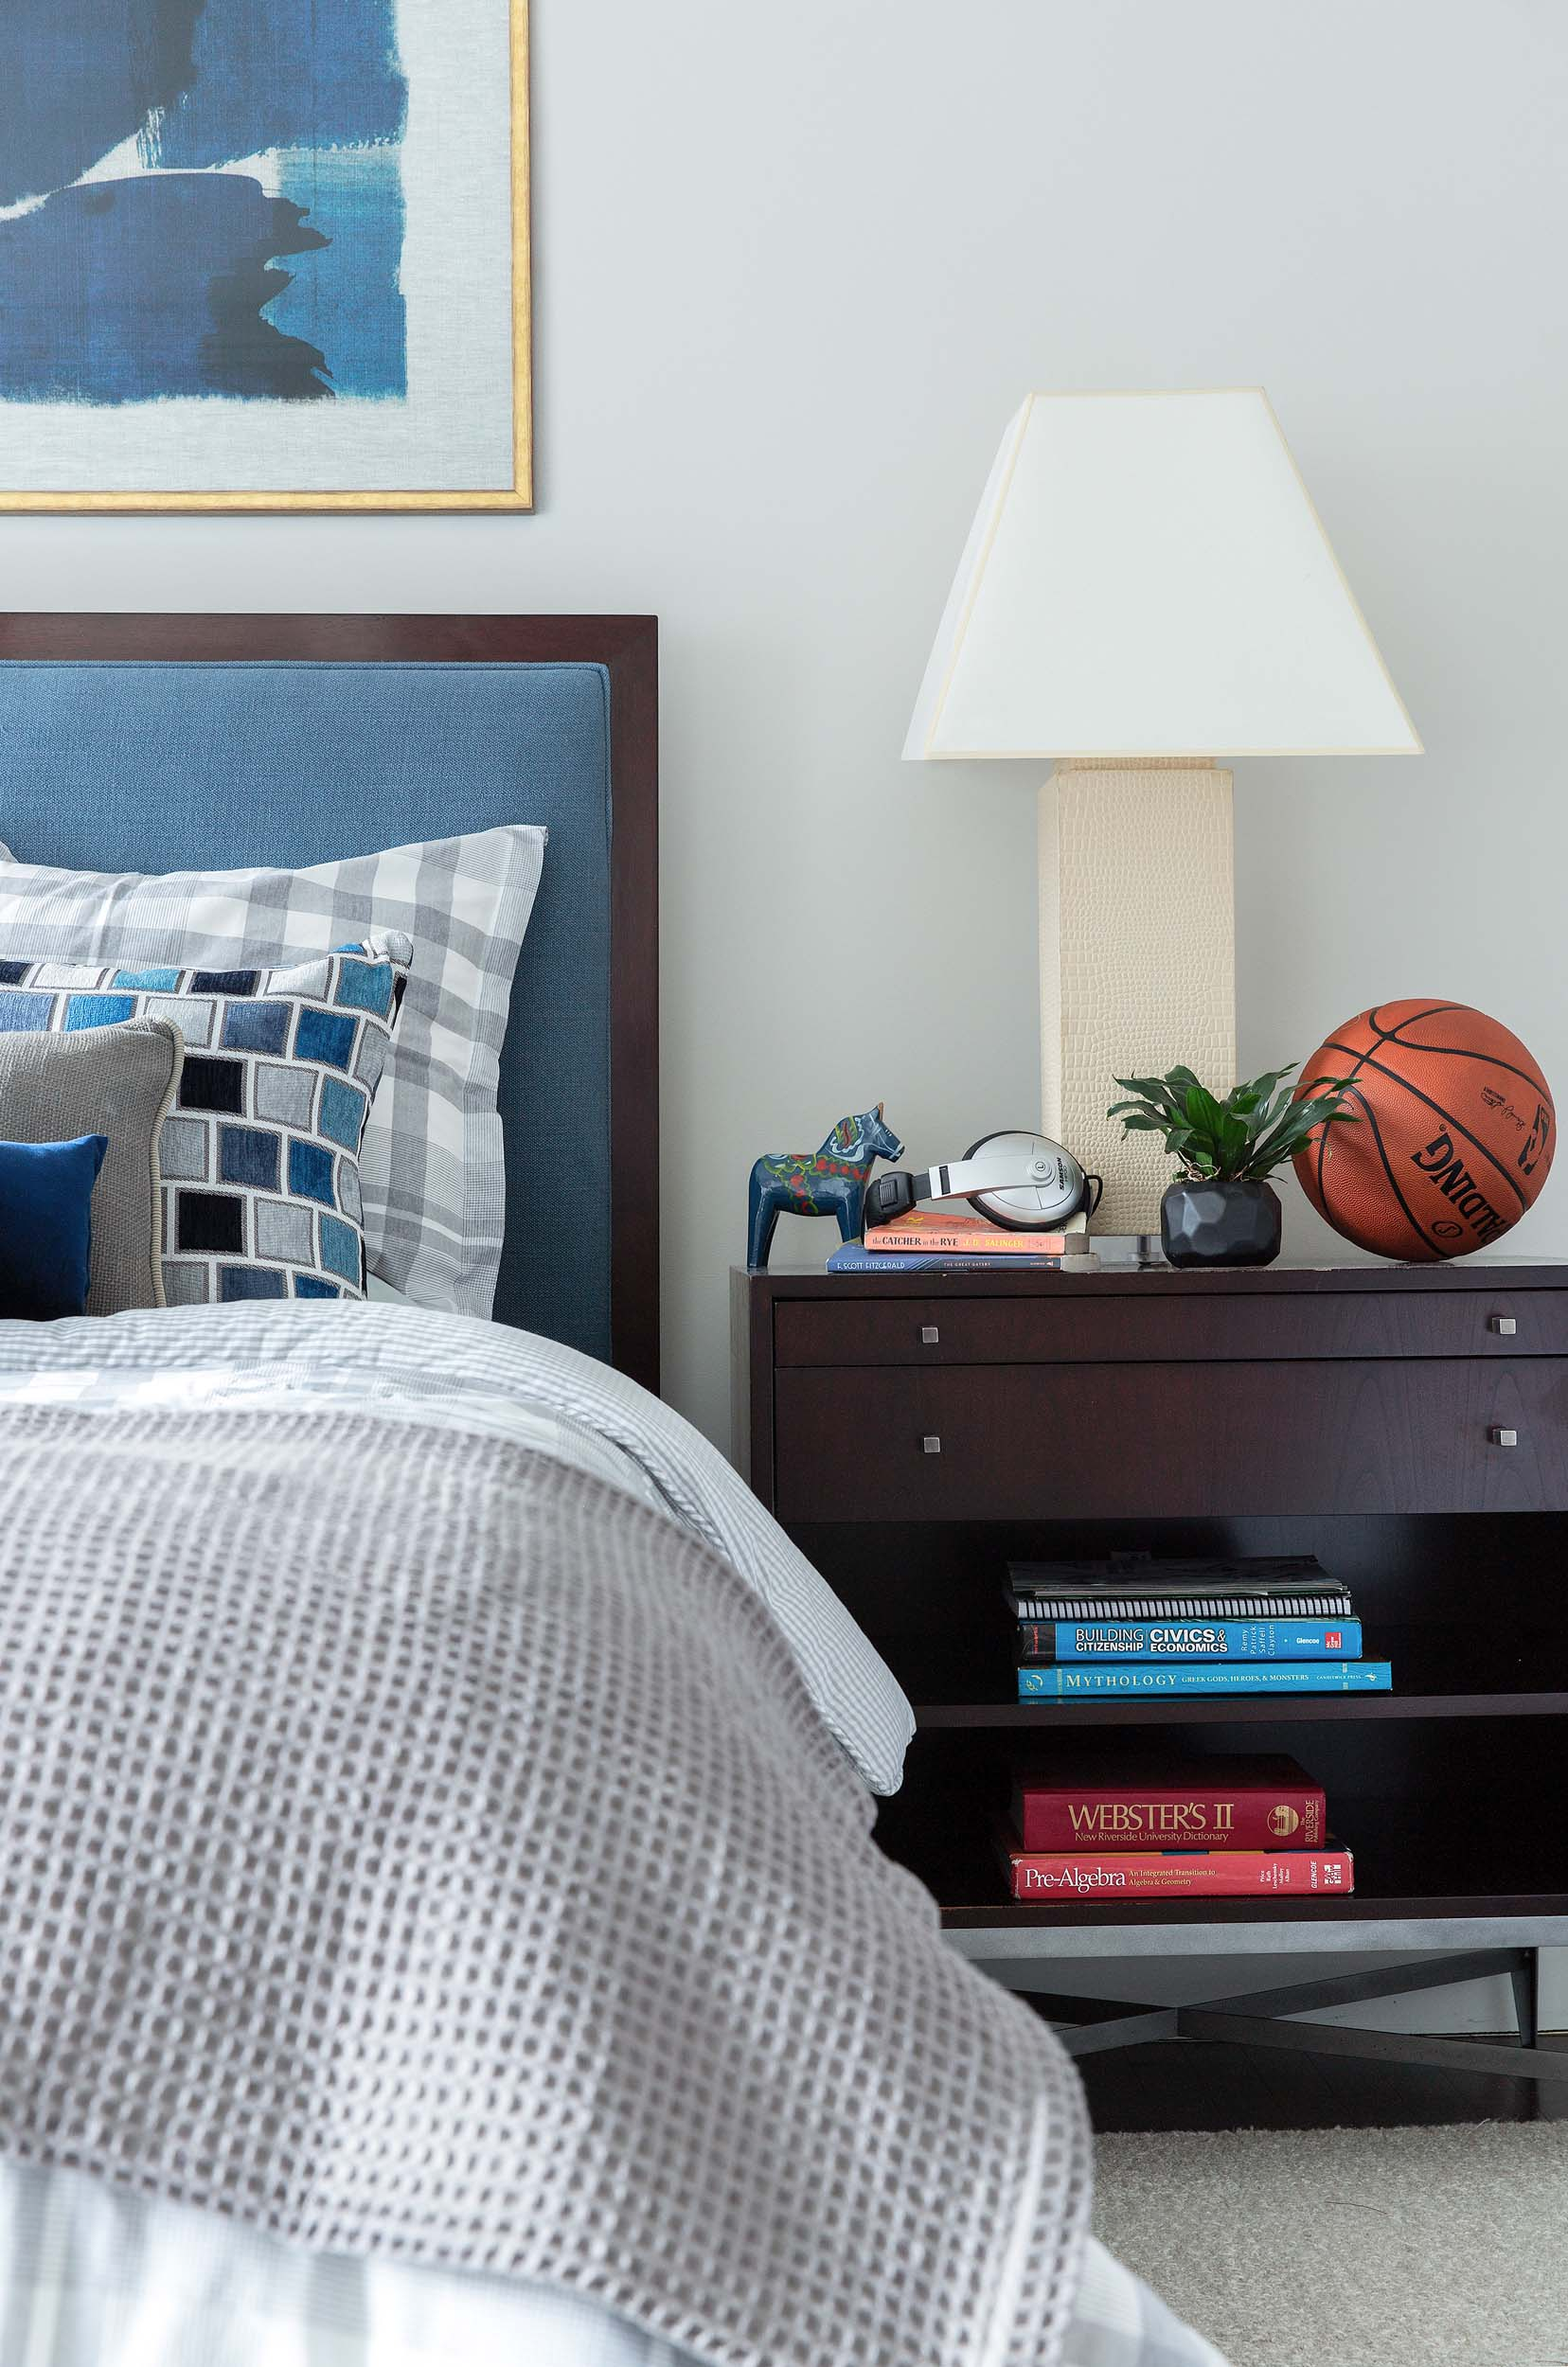 15-Casual-Elegant-Transitional-Contemporary-Top-boys-guest-bedroom-blue-headboard-ideas-Decorator-Best-Interior-Designers-Boston-South-End-Back-Bay-Cambridge-Dane-Austin-Design.jpg